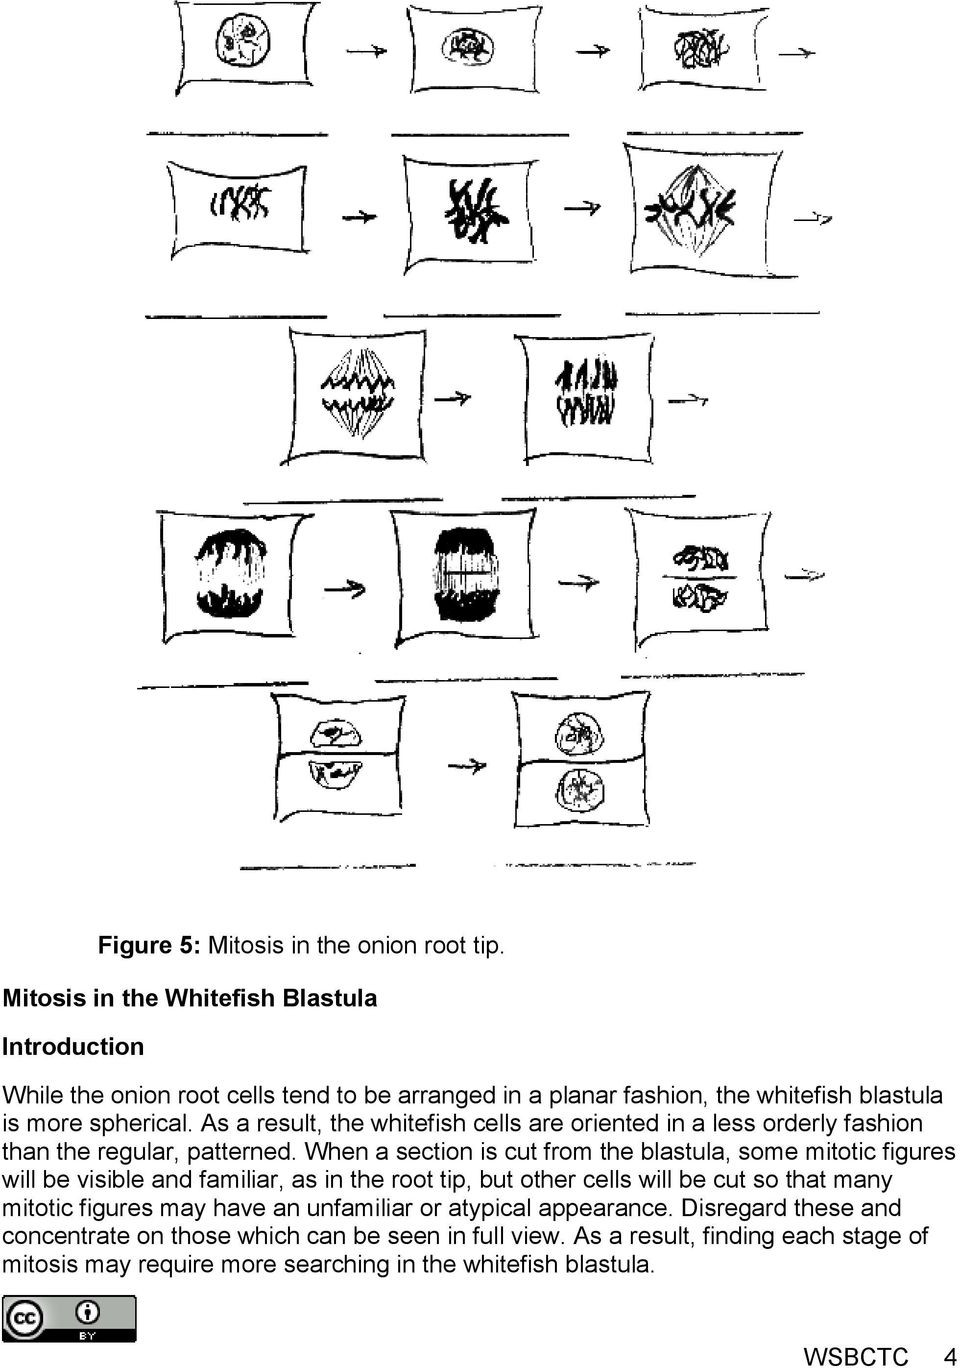 Onion Cell Mitosis Worksheet Answers 1 Identify Each Phase Of Mitosis On the Onion Root Tip and